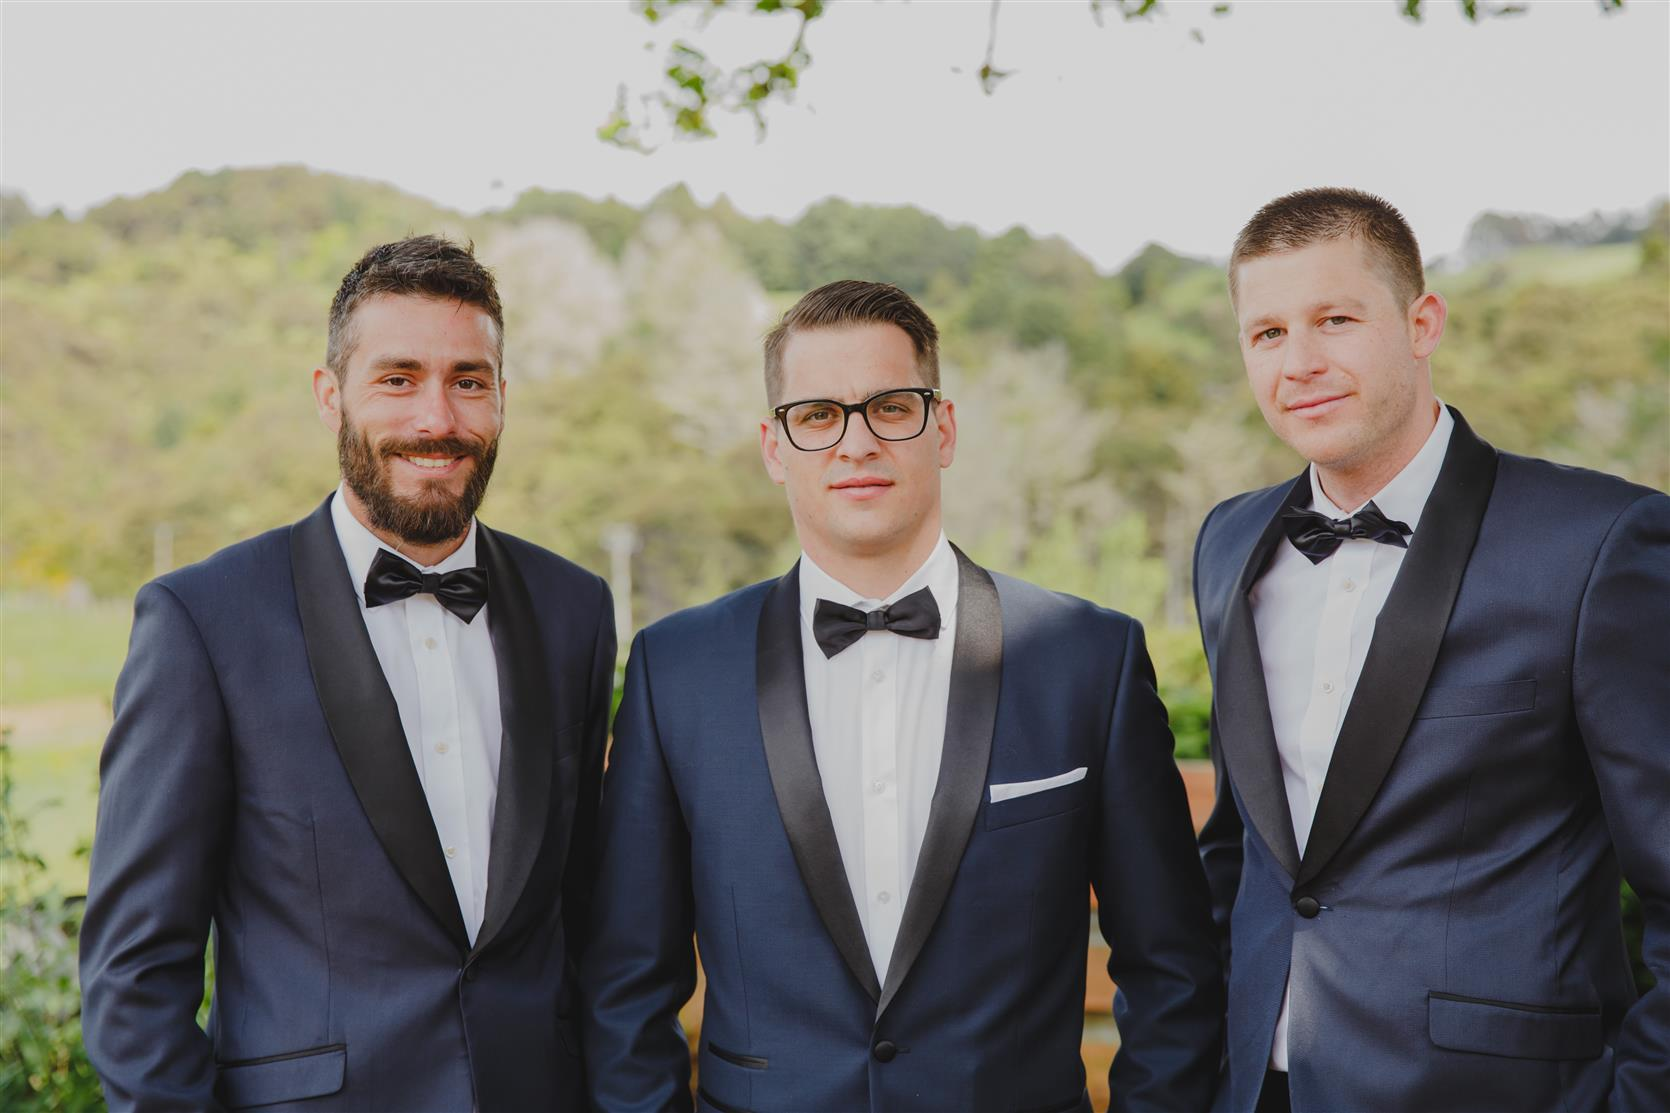 Dapper Groom & Groomsmen - An Elegant Modern Vintage Spring Wedding